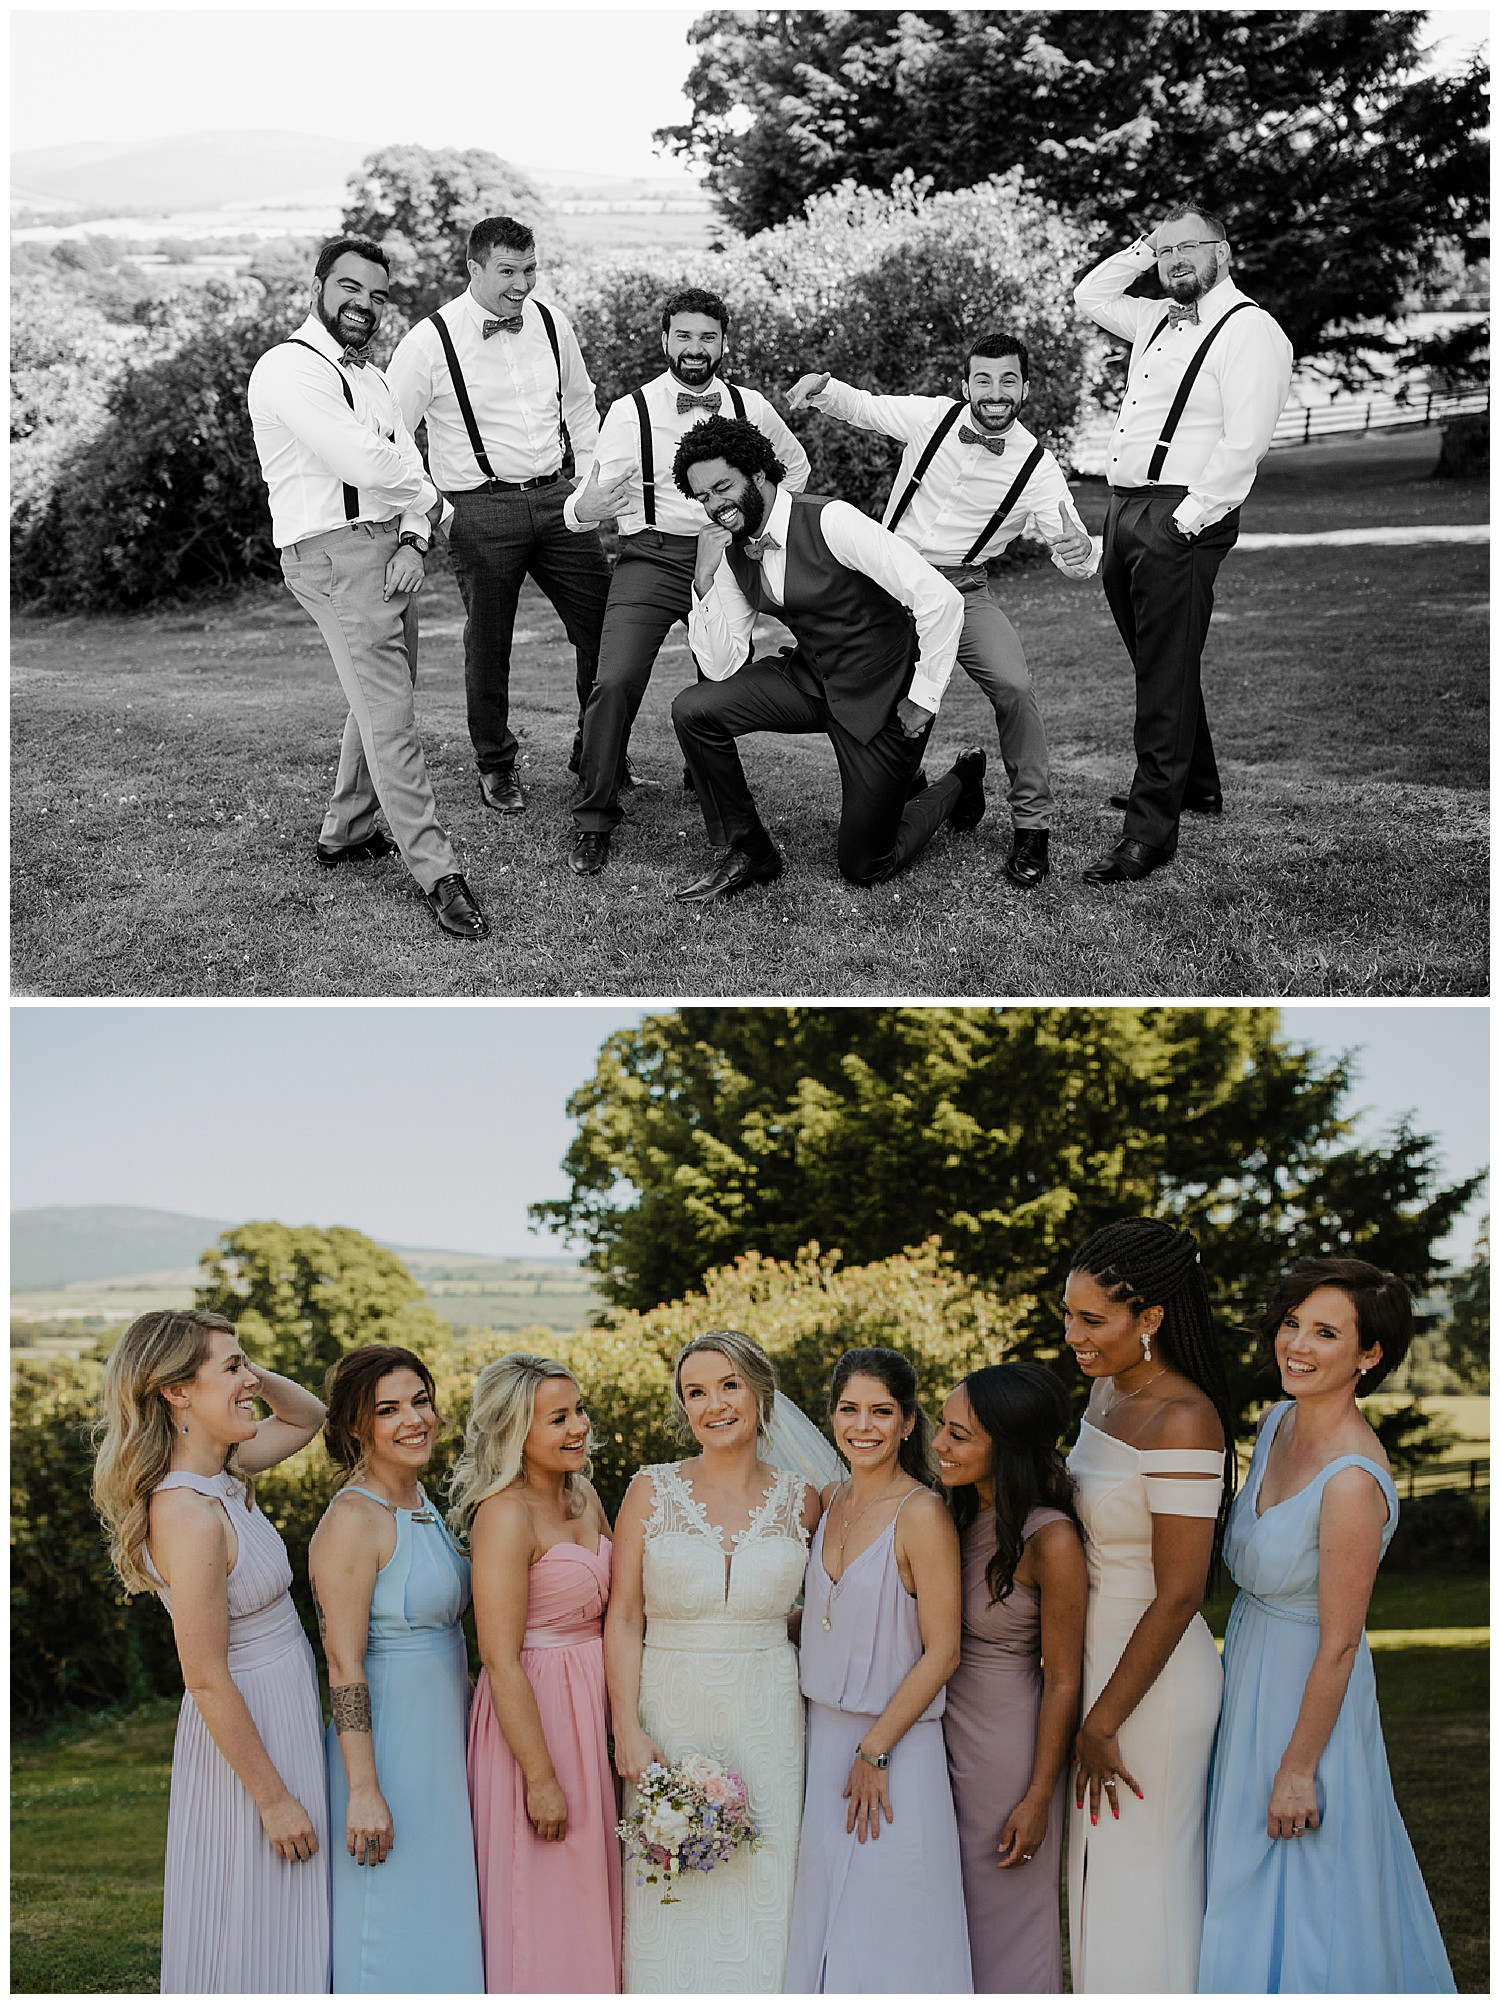 j&r_ballybeg_house_wedding_photographer_livia_figueiredo_447.jpg